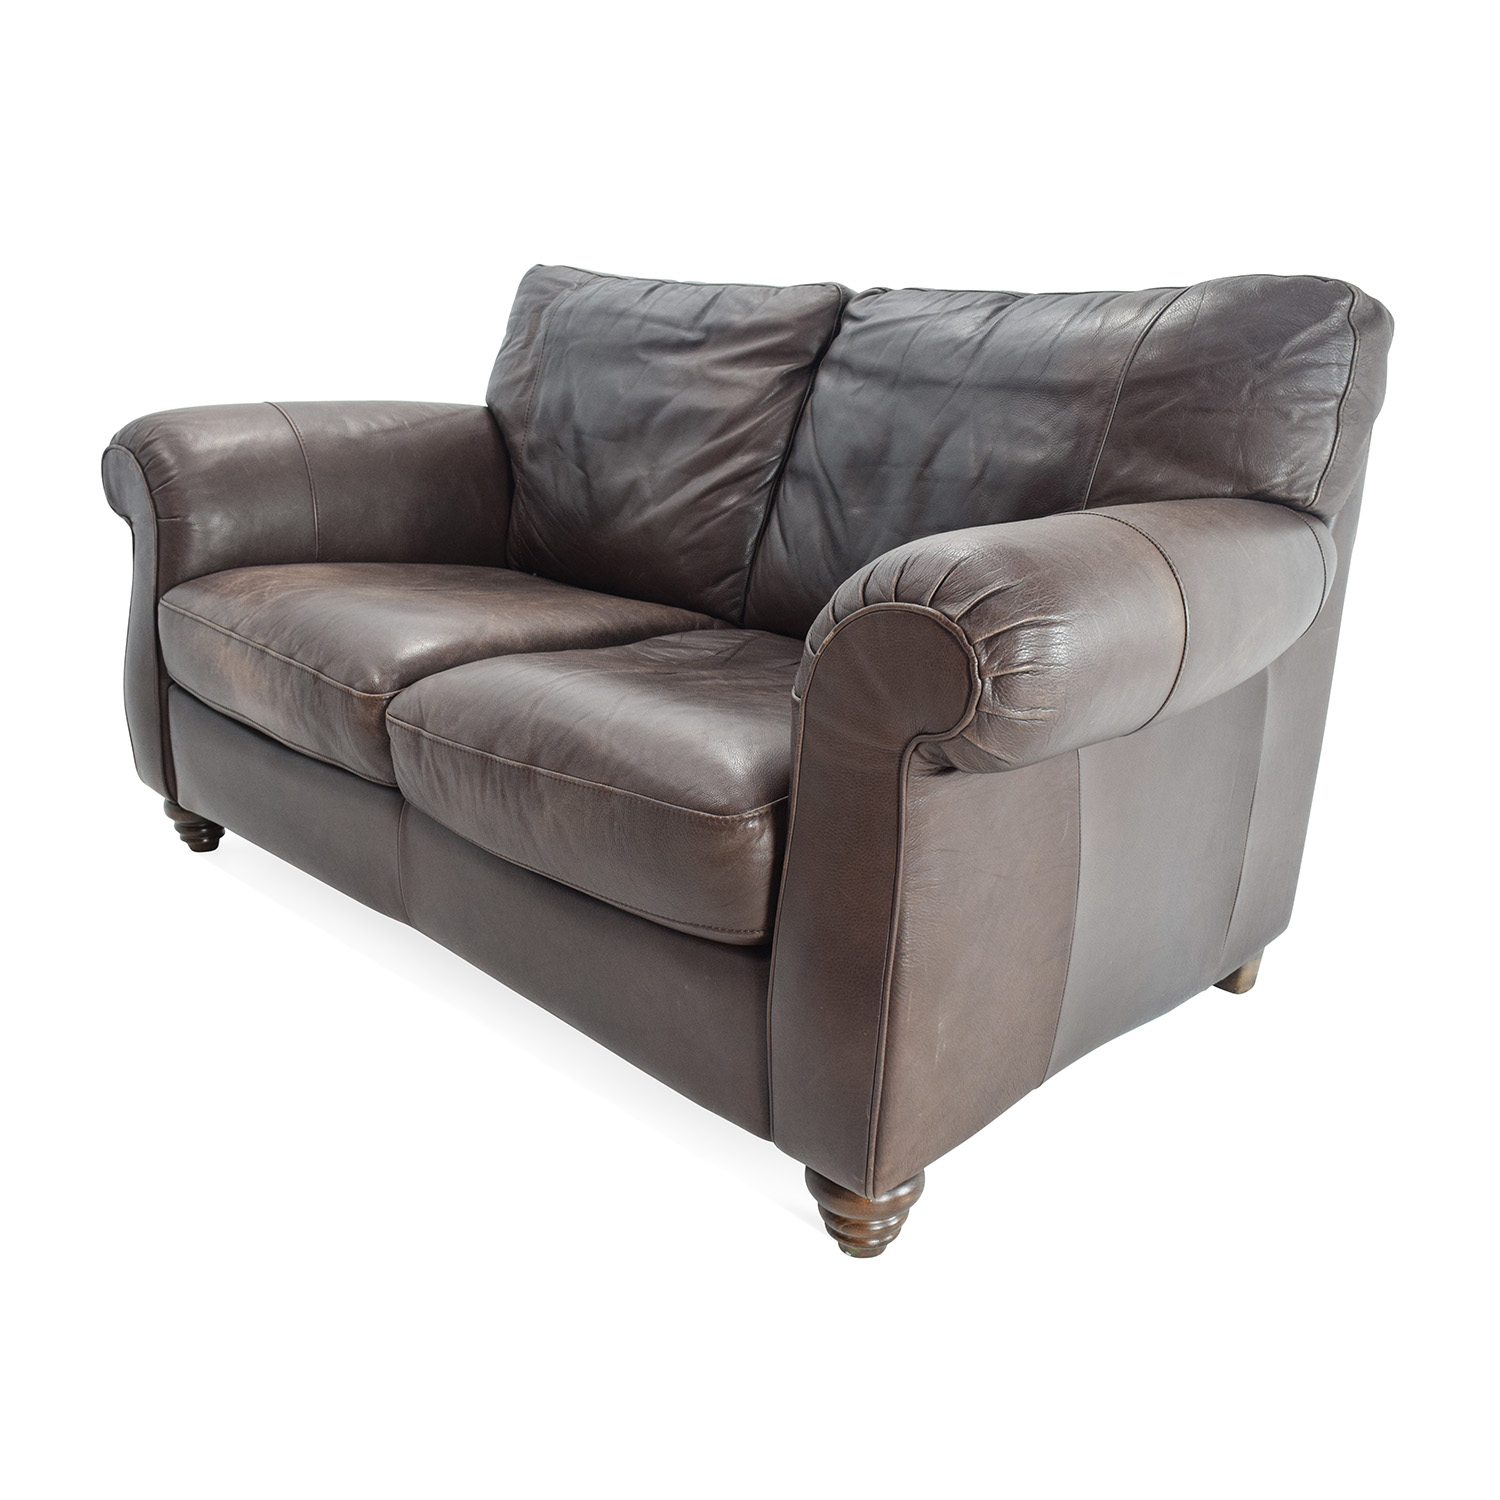 81 Off Natuzzi Natuzzi Brown Leather Loveseat Sofas